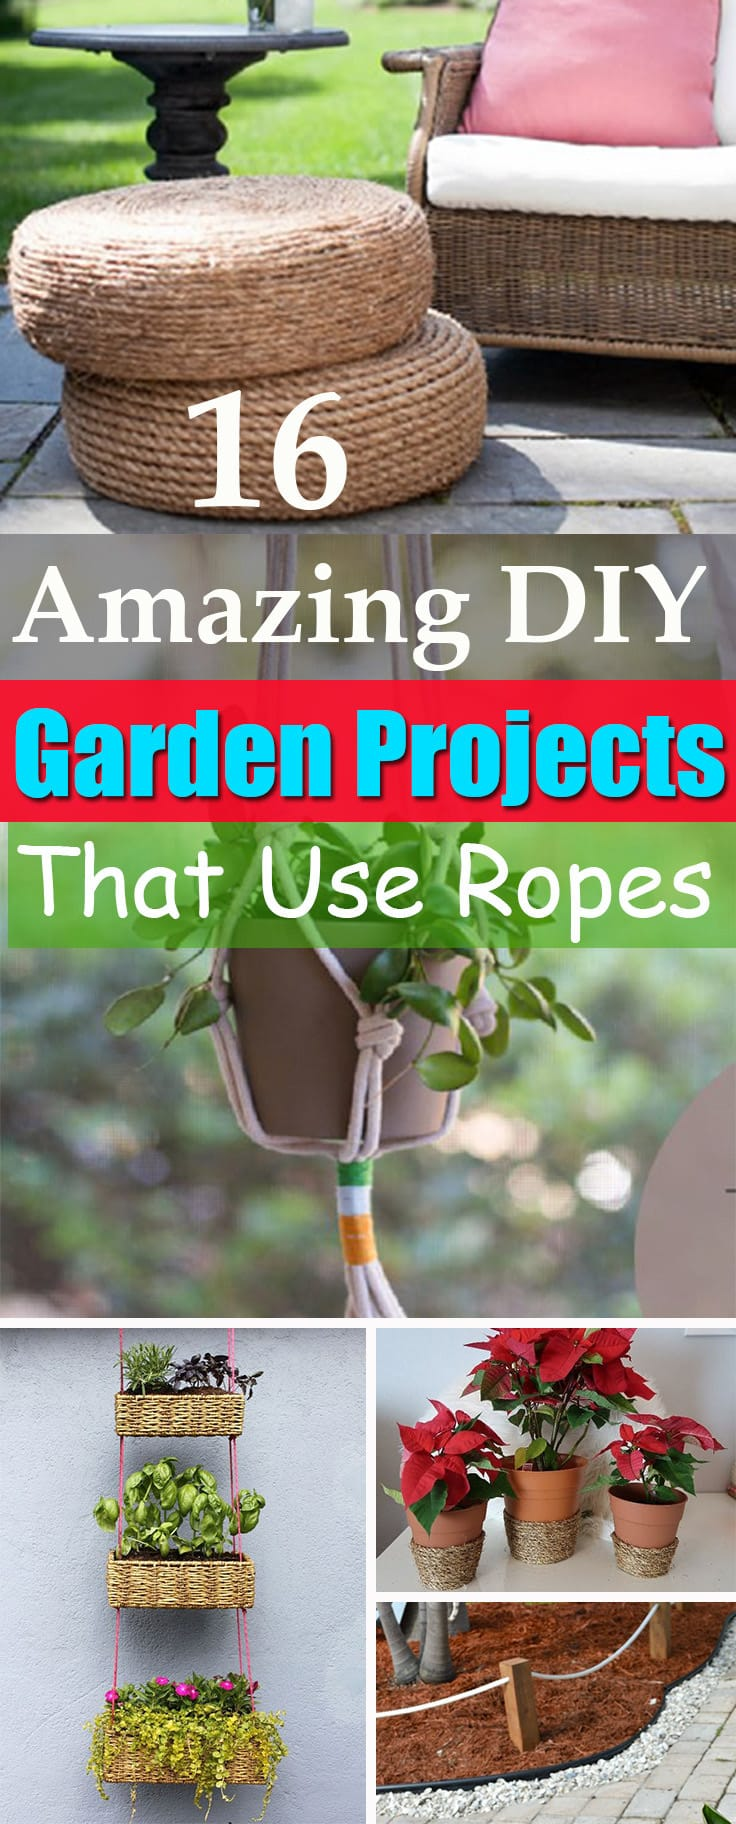 16 DIY Rope Projects and Ideas related to gardening that are interesting and super easy to complete!